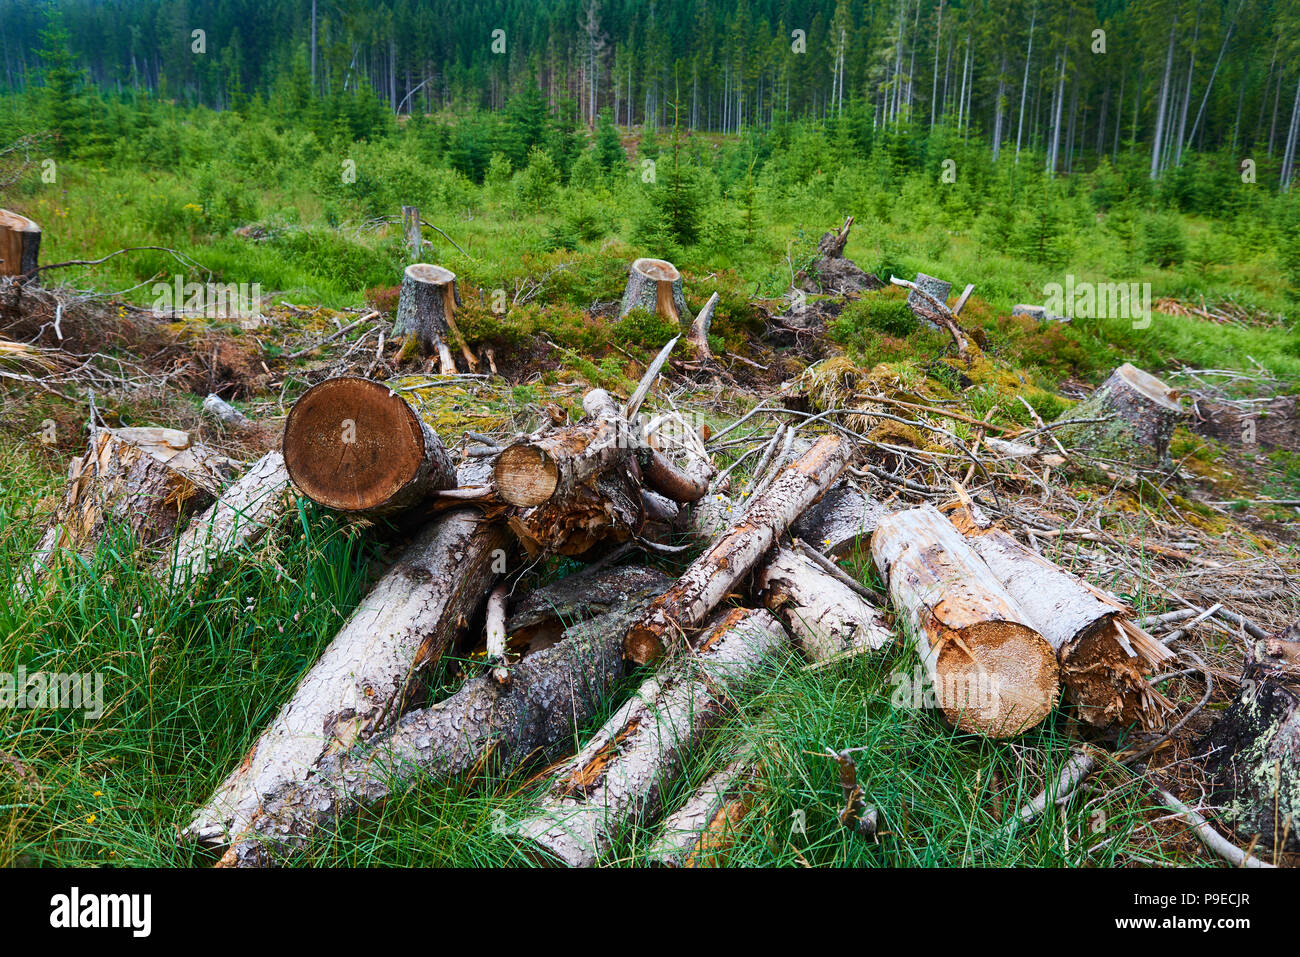 Dead and felled trees attacked by a bark beetle in a forest near the Plesne lake in the Sumava National Park (Bohemian Forest) Stock Photo